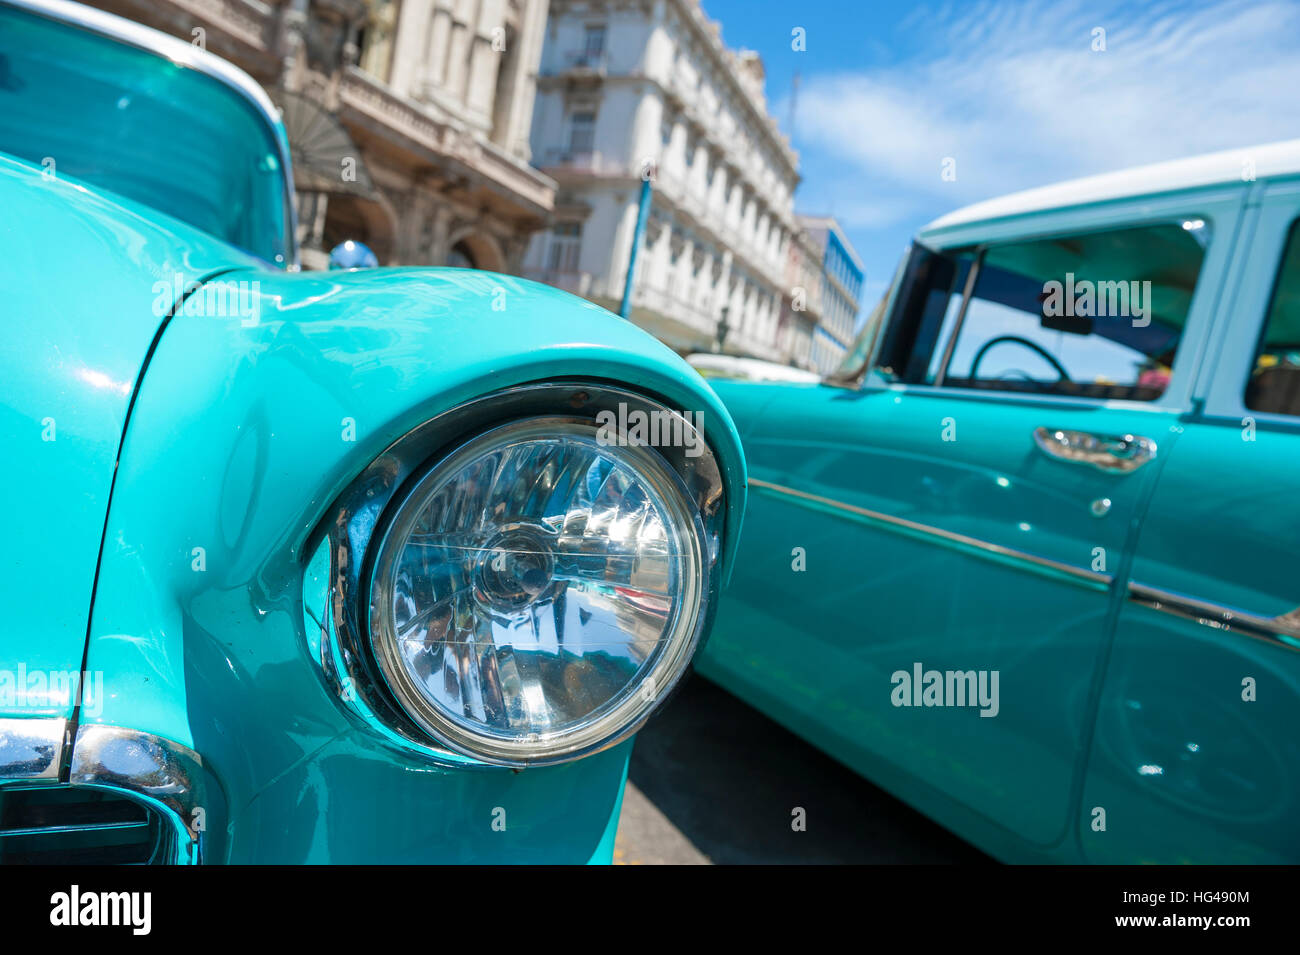 Close up of classic American cars parked in Havana, Cuba - Stock Image